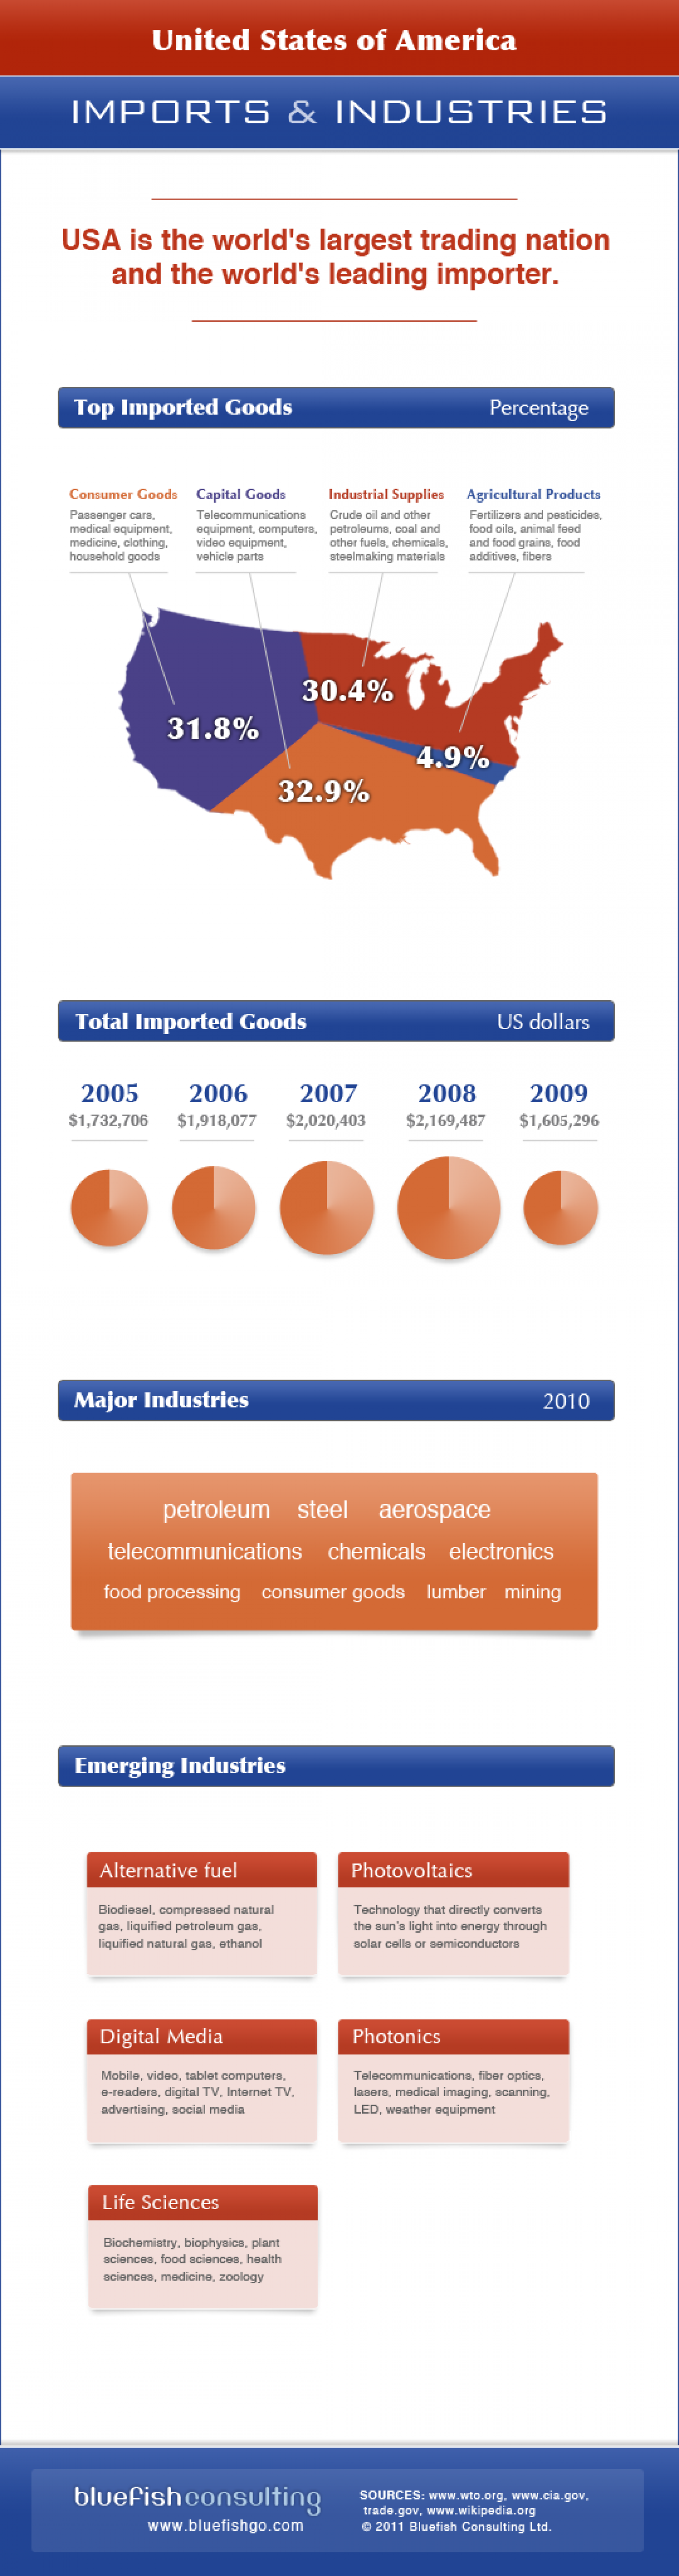 USA Imports and Industries Infographic